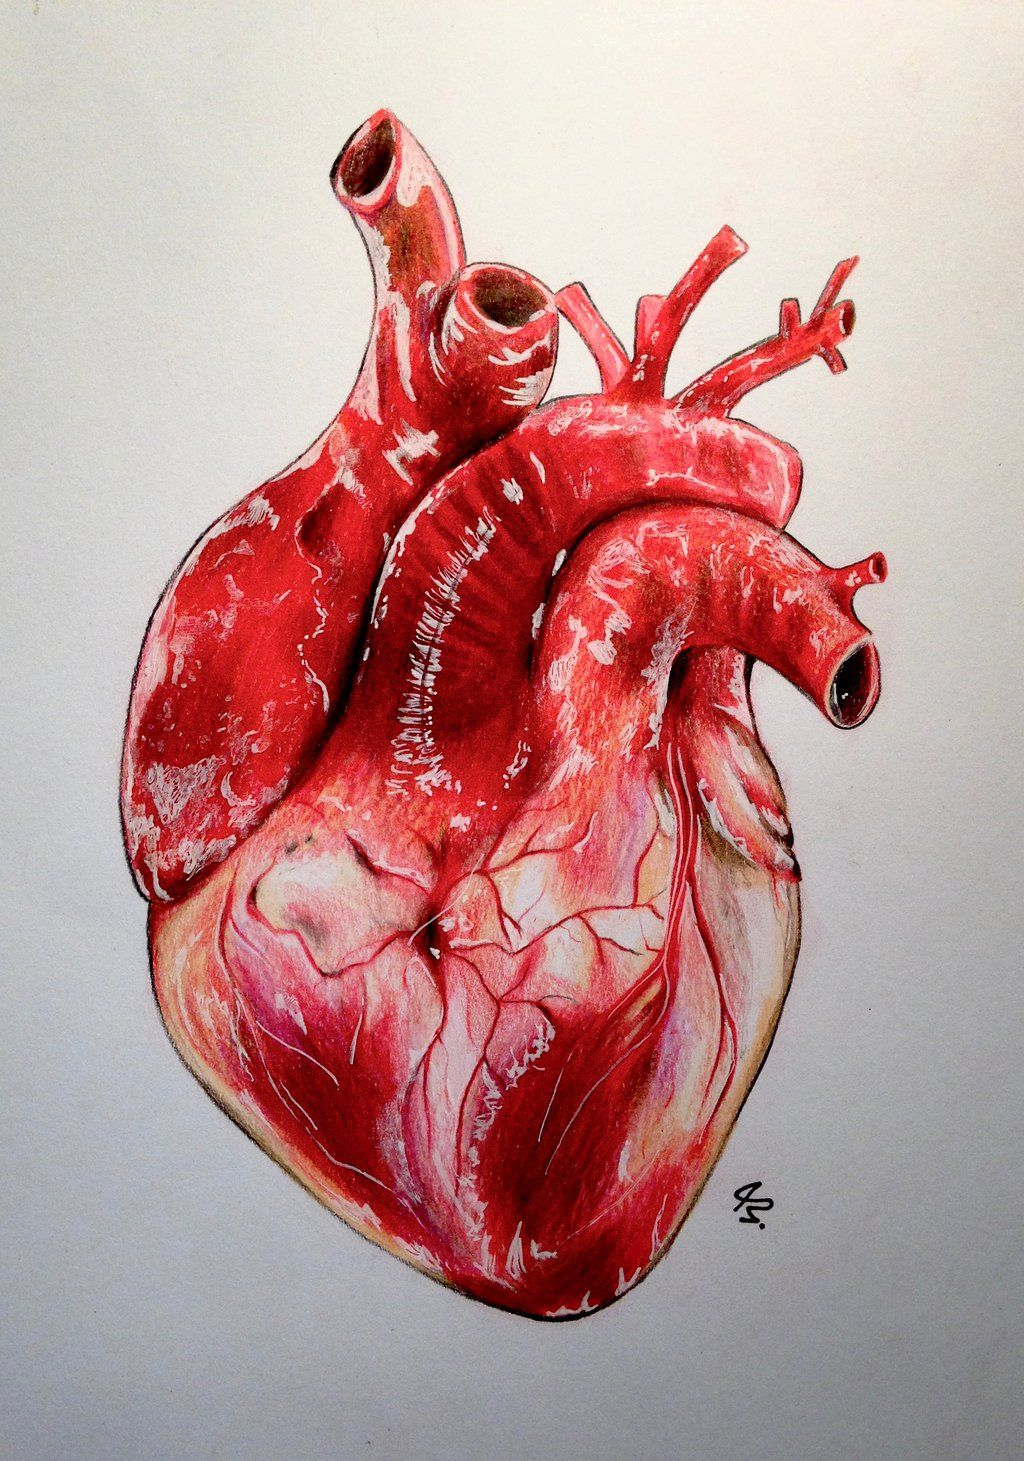 Real Heart Drawing : heart, drawing, Realistic, Human, Heart, Lunacanan, Drawing,, Anatomical